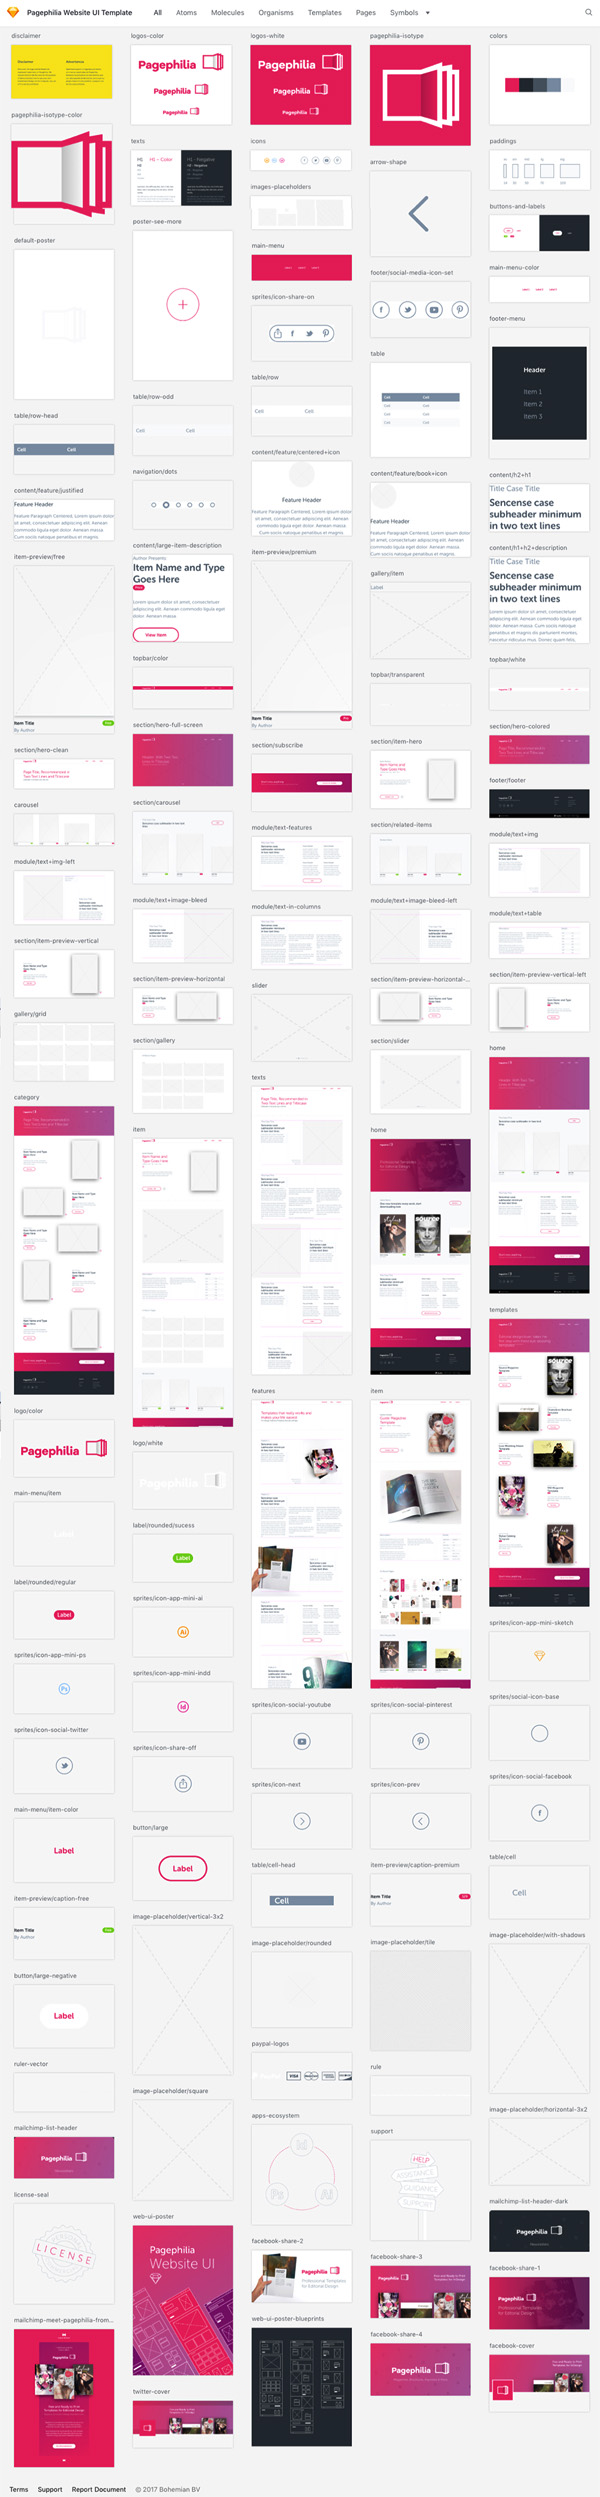 Pagephilia Website UI Kit Template